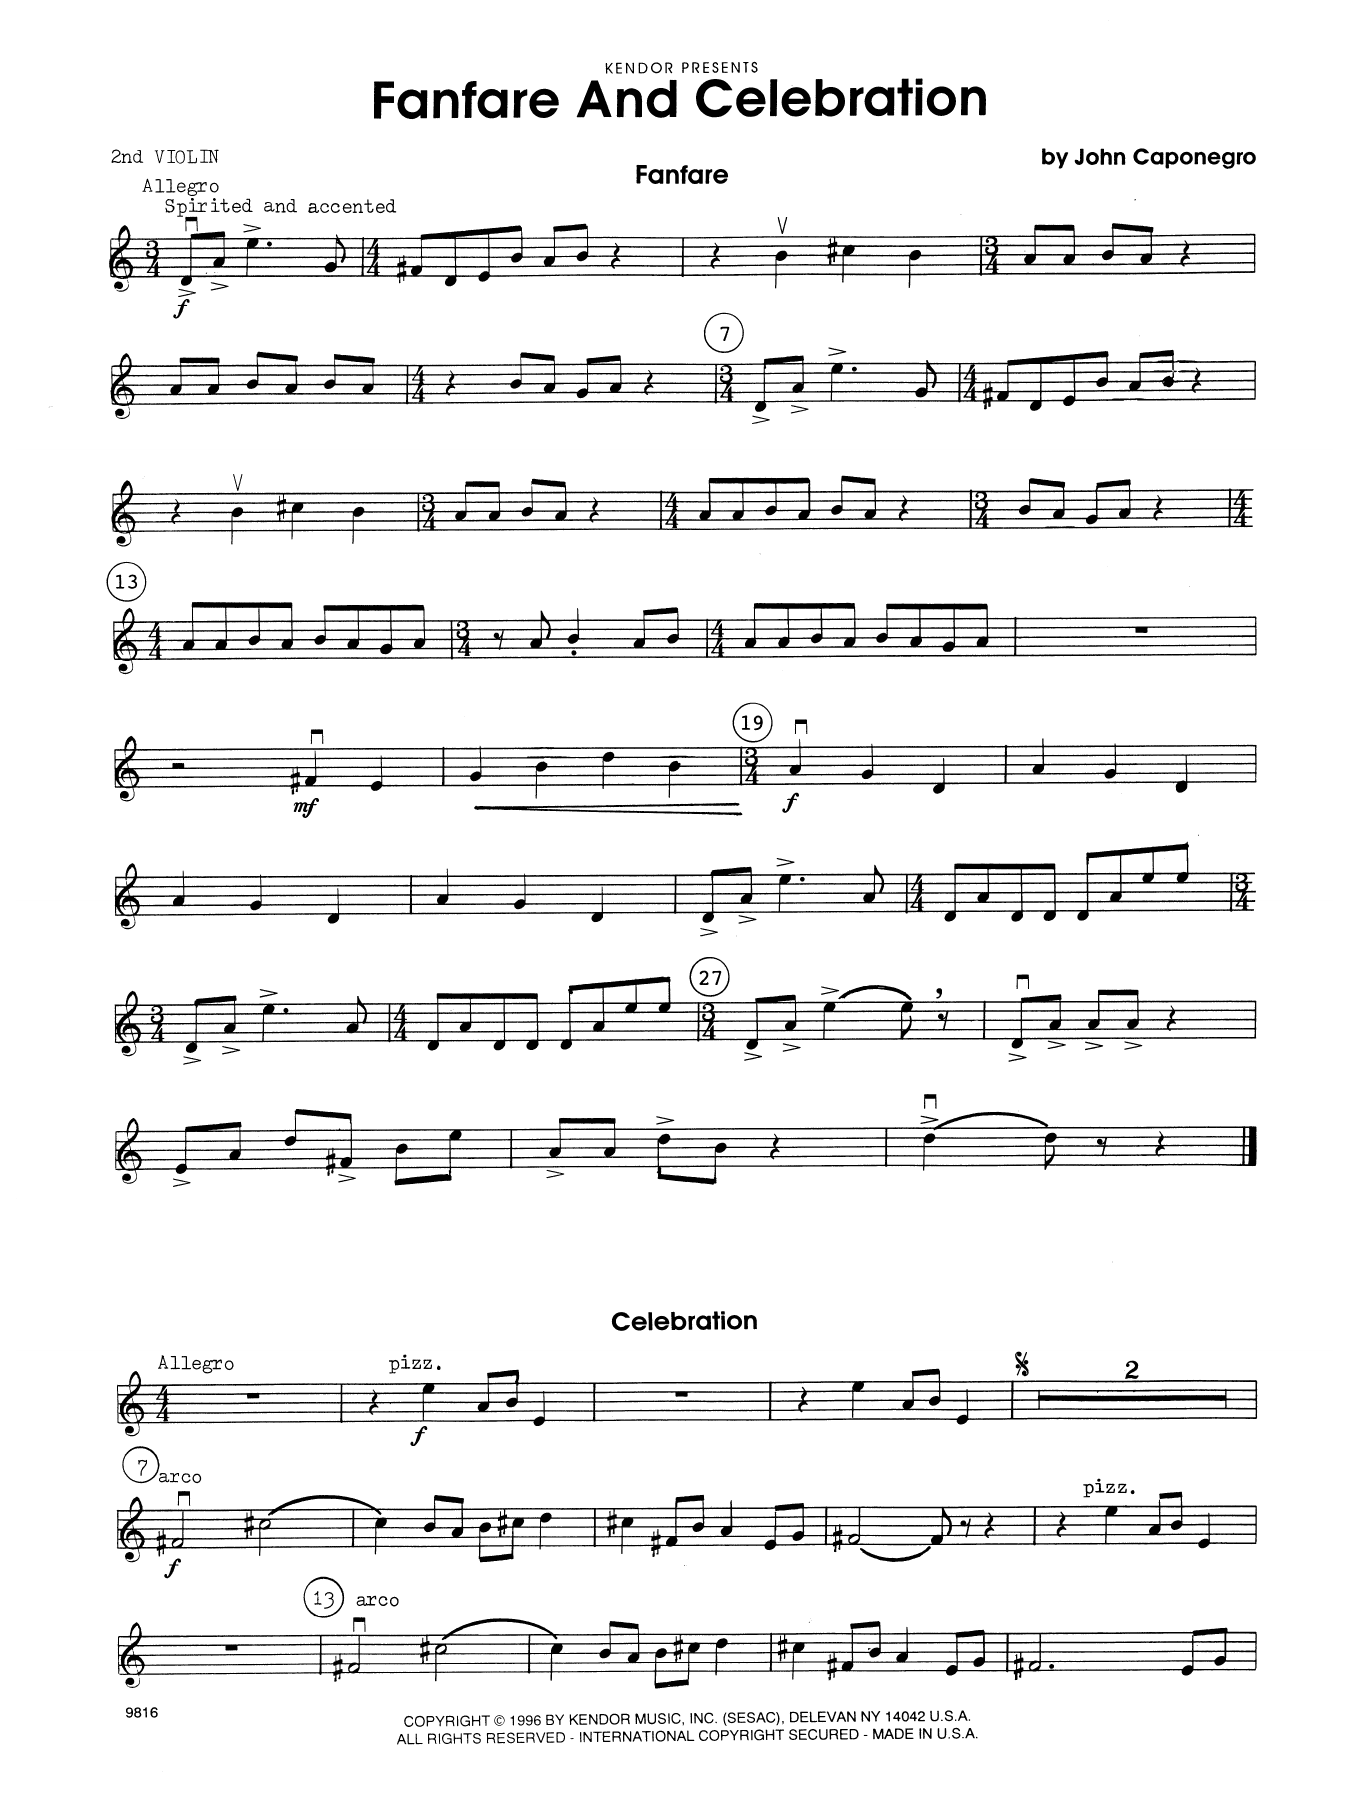 John Caponegro Fanfare and Celebration - 2nd Violin sheet music notes and chords. Download Printable PDF.